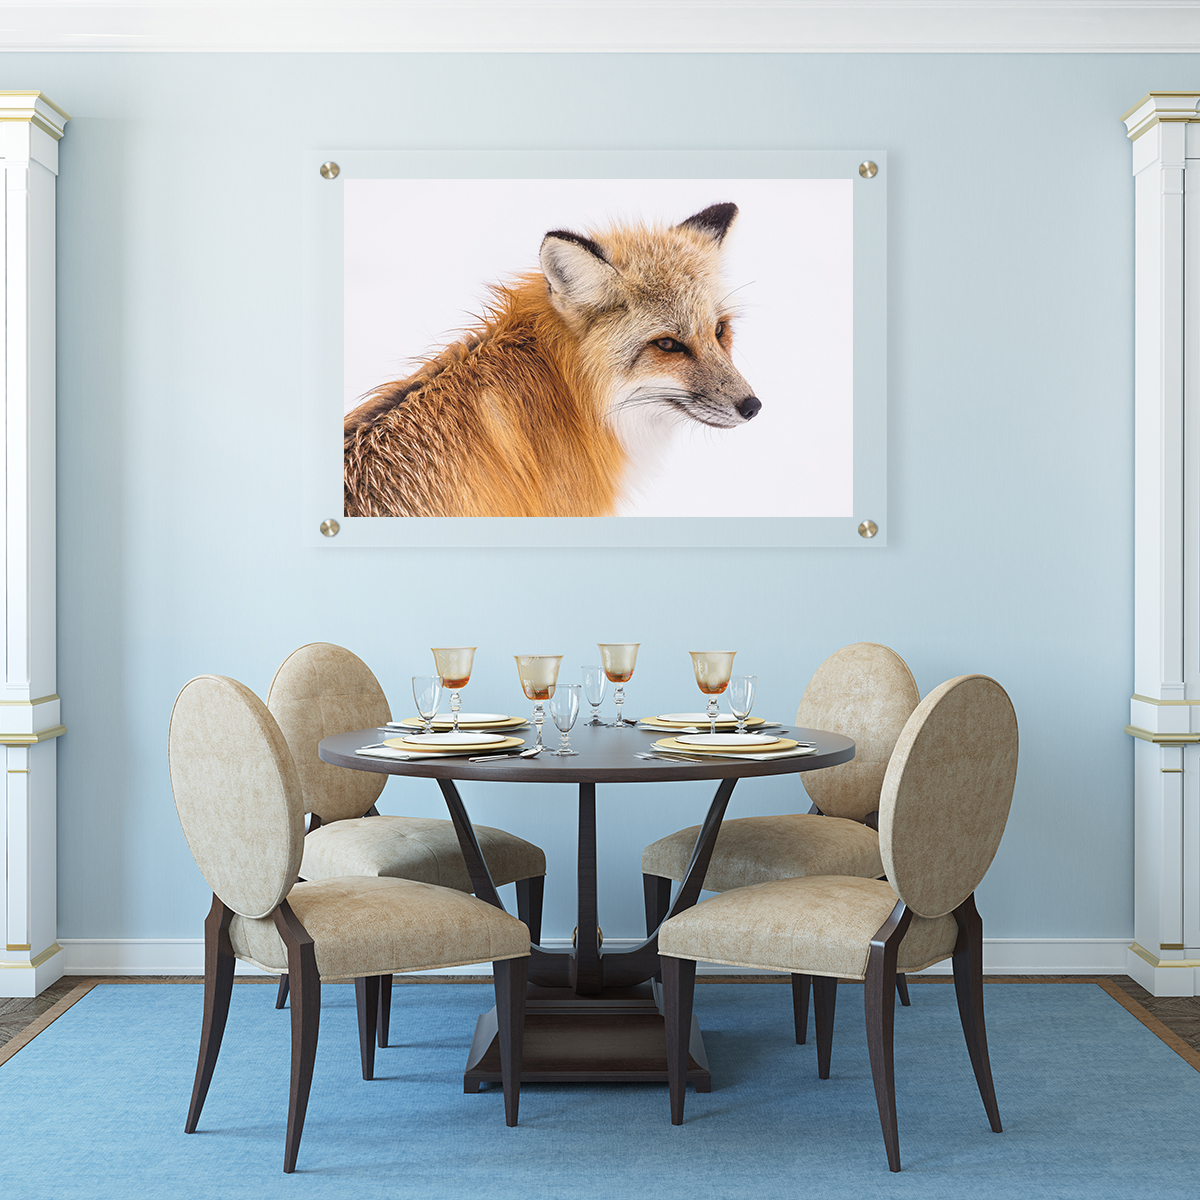 Custom Plexiglass Fox in Dining Room